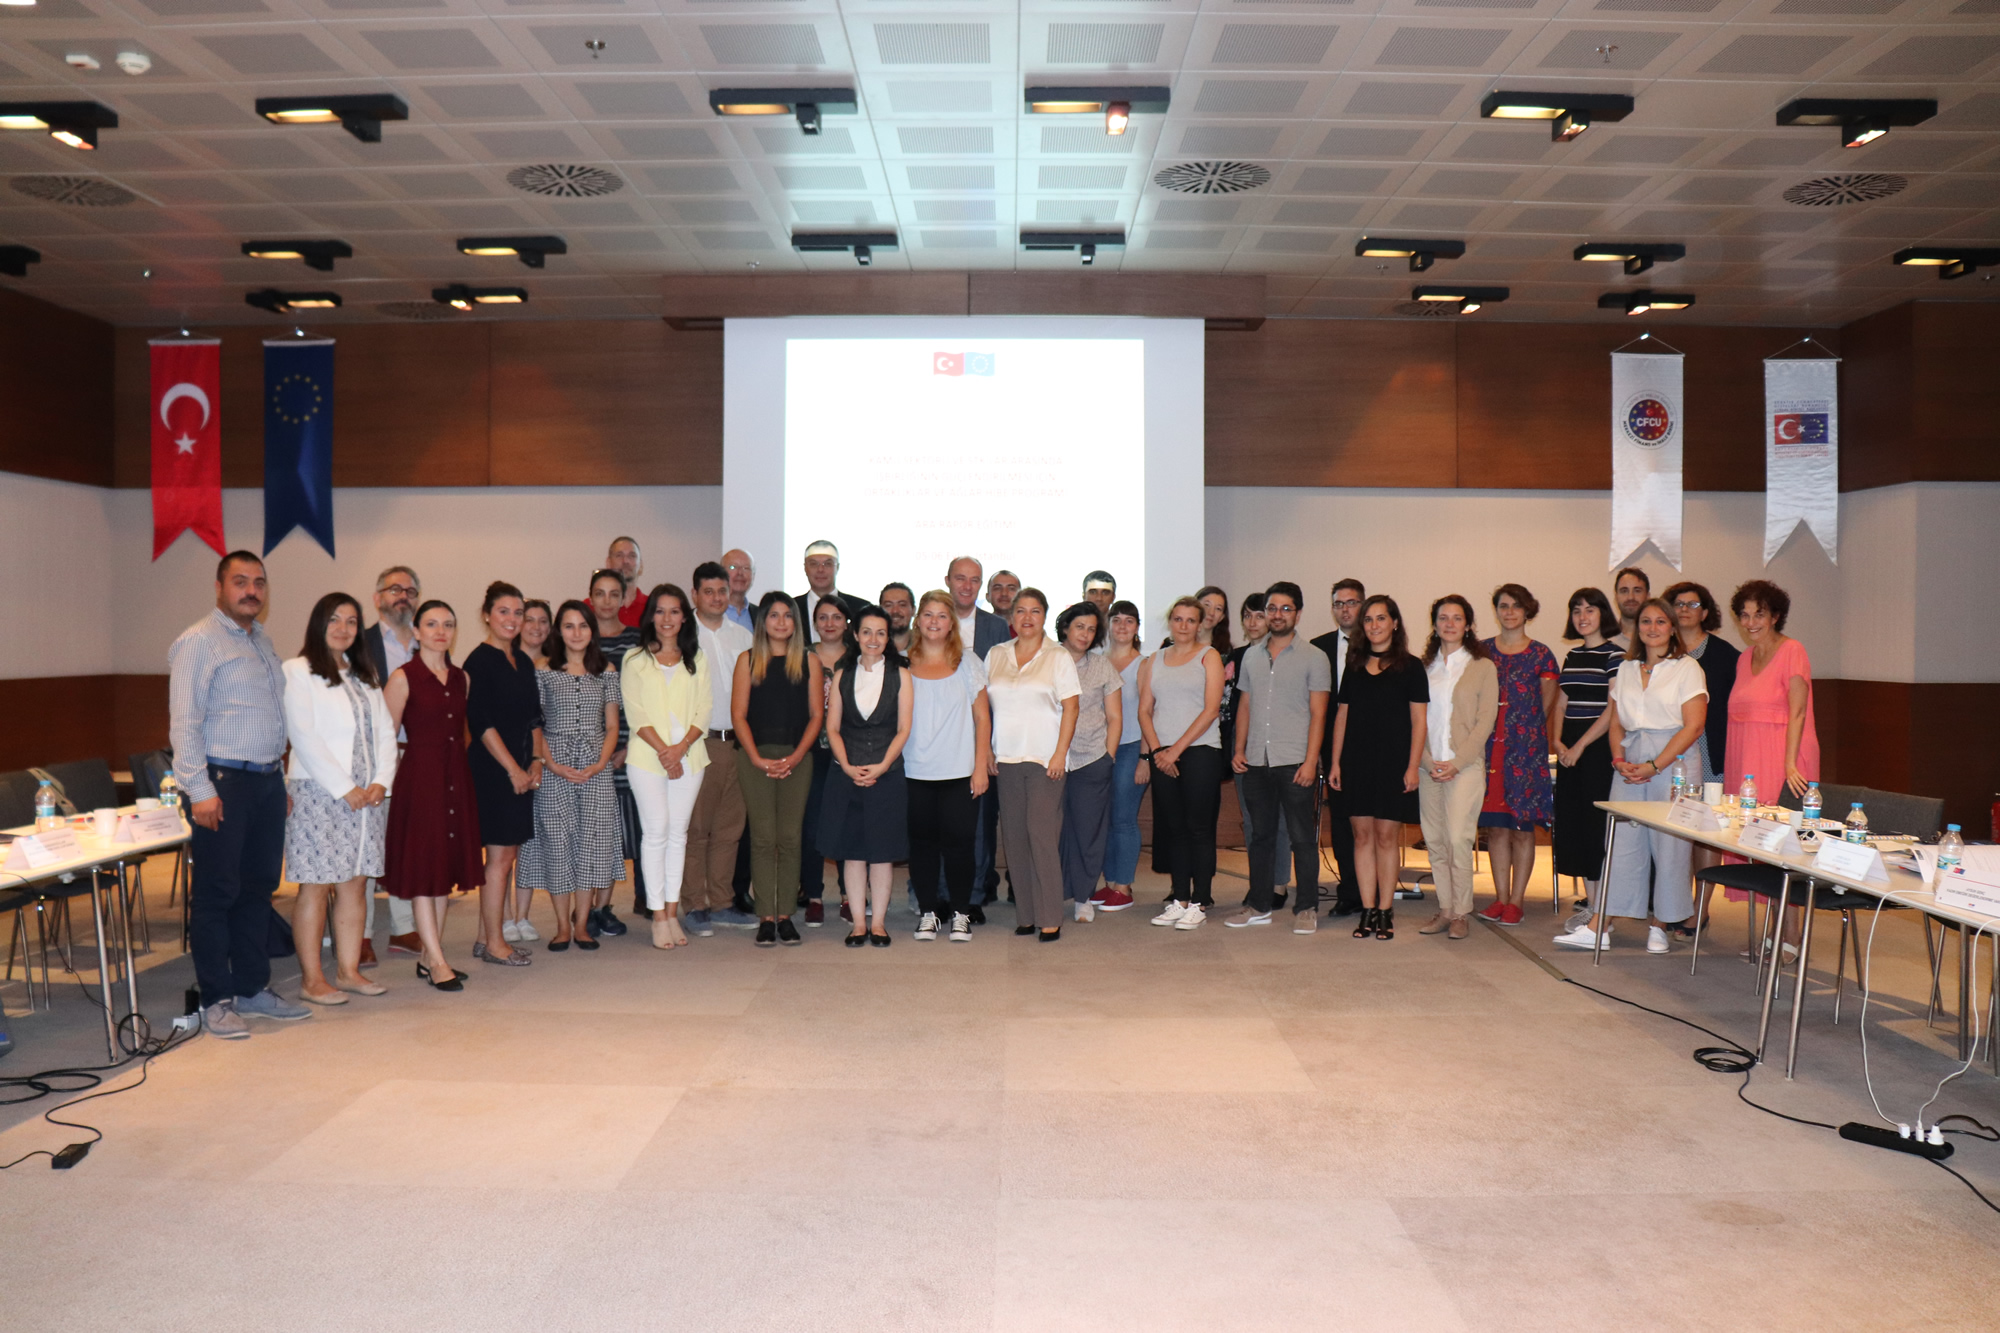 Grant Scheme for Partnerships and Networks Interim Report Training for Strengthening Cooperation Between Public Sector and CSOs was held on 5-6 September in Istanbul.